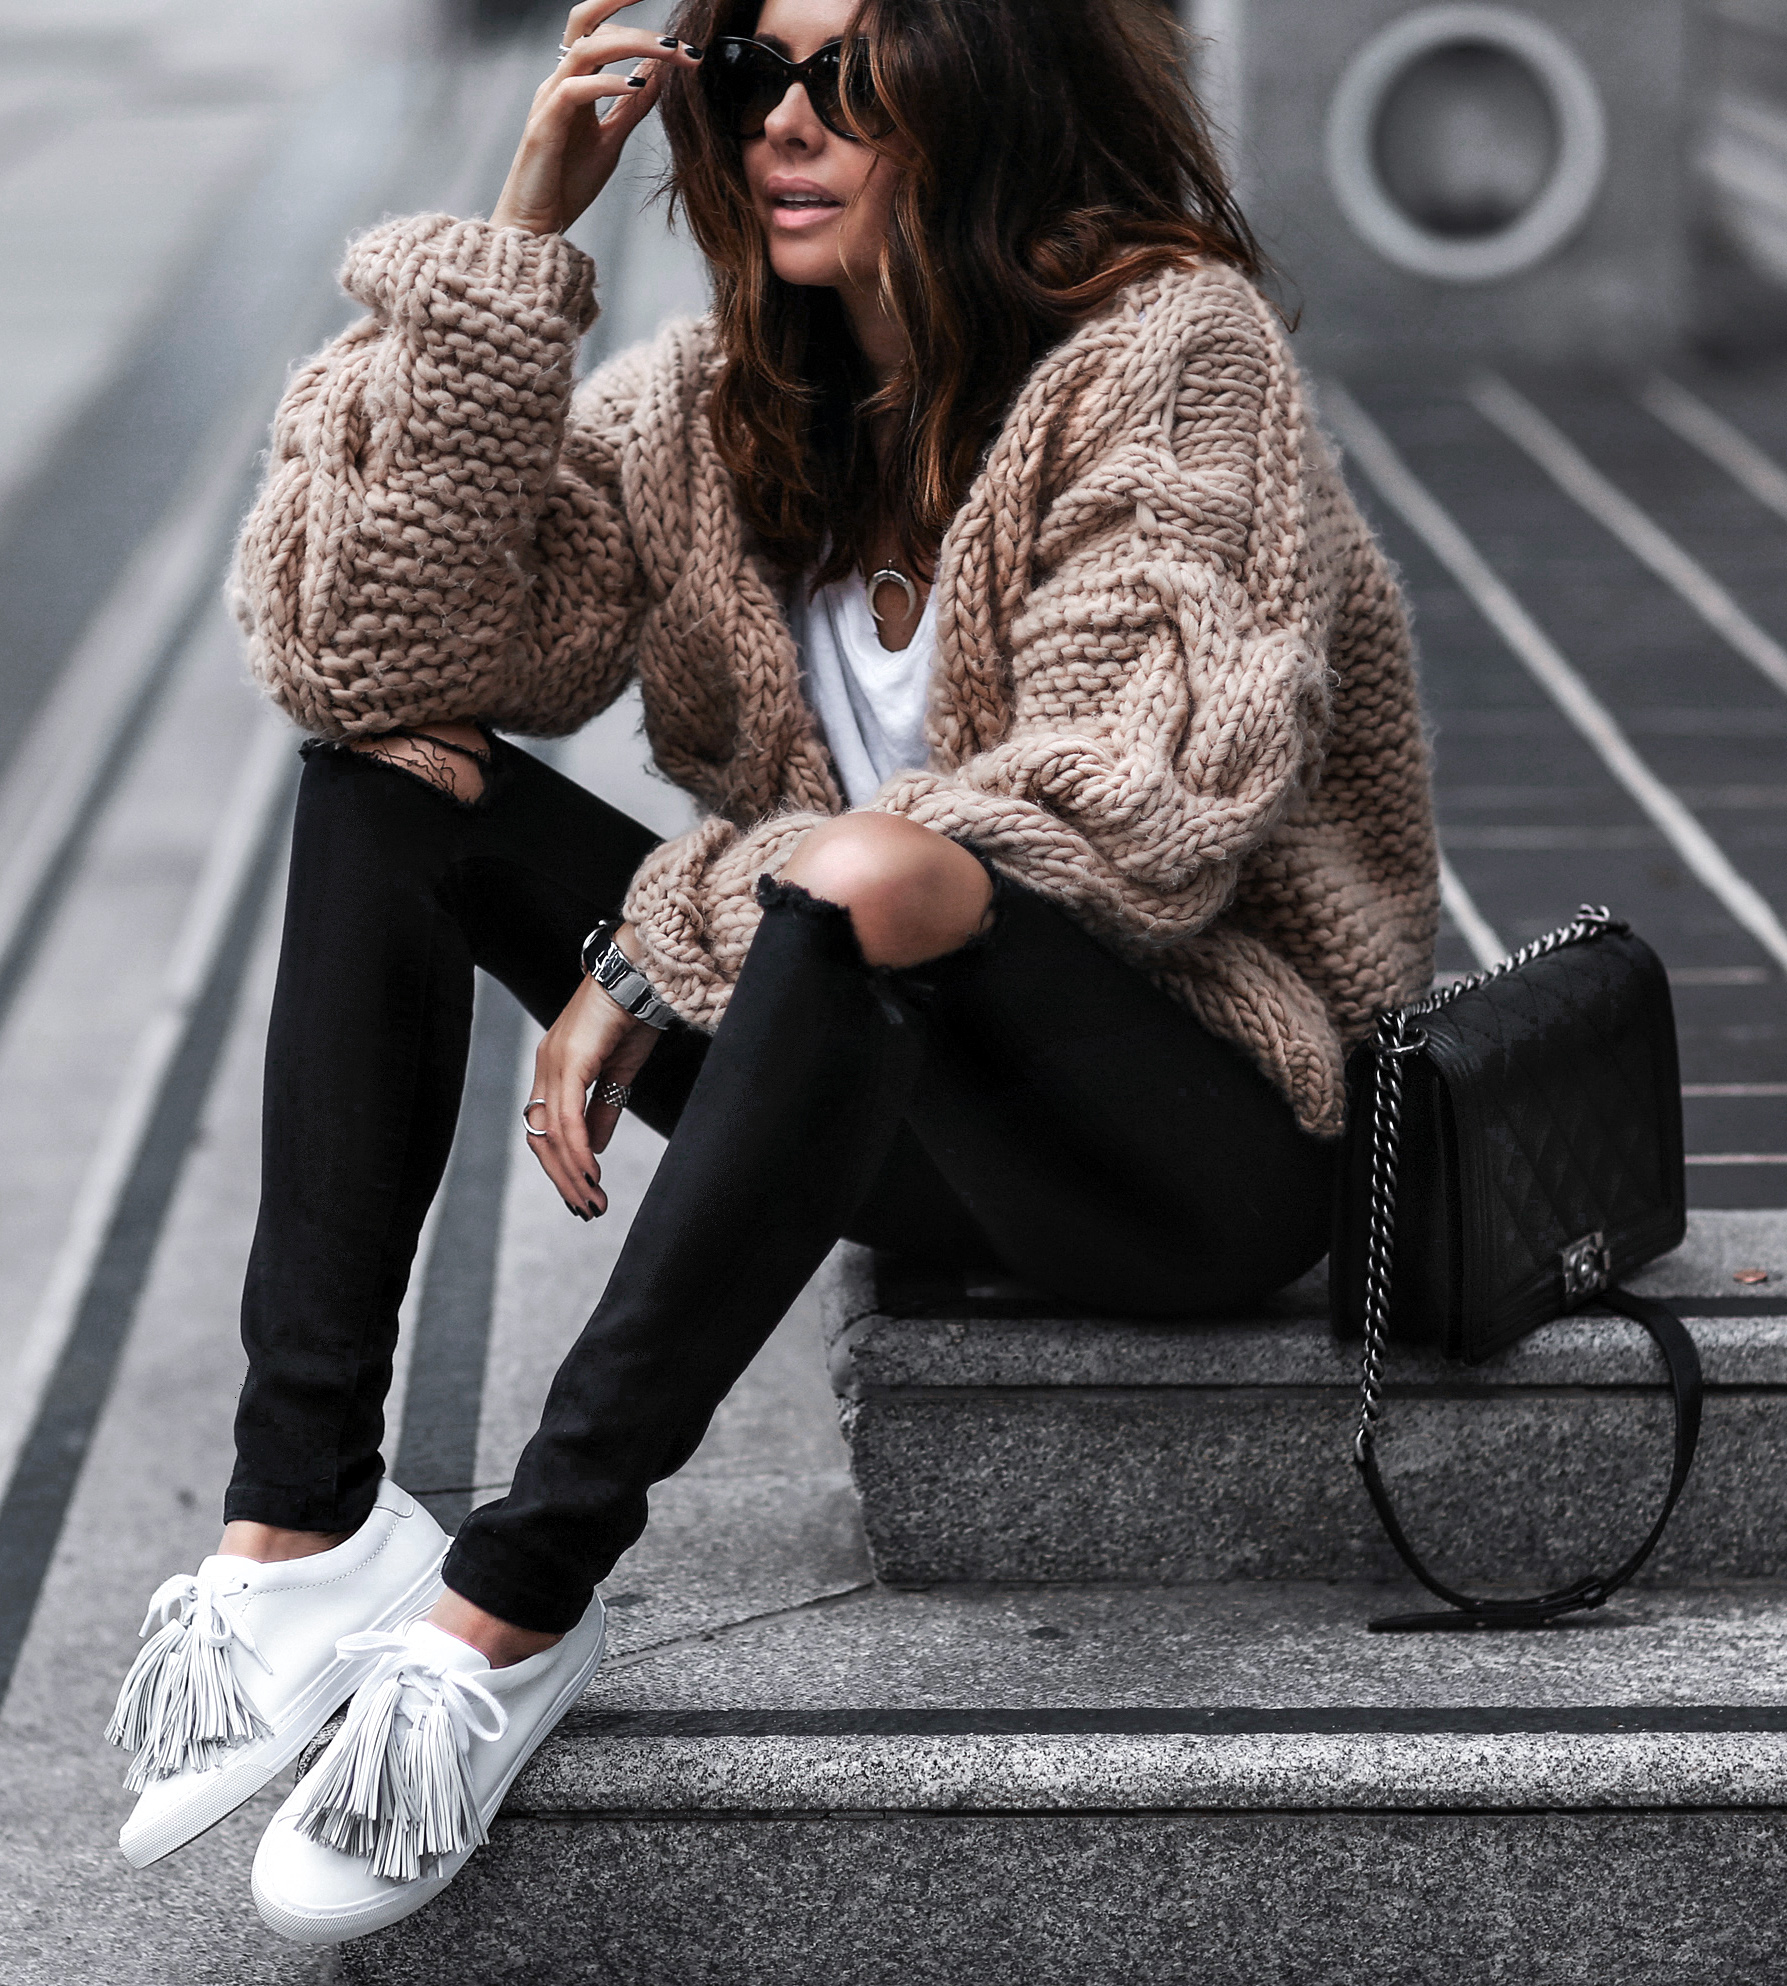 white sneakers with fringe, cable knit sweater, ripped black jeans, chanel bag